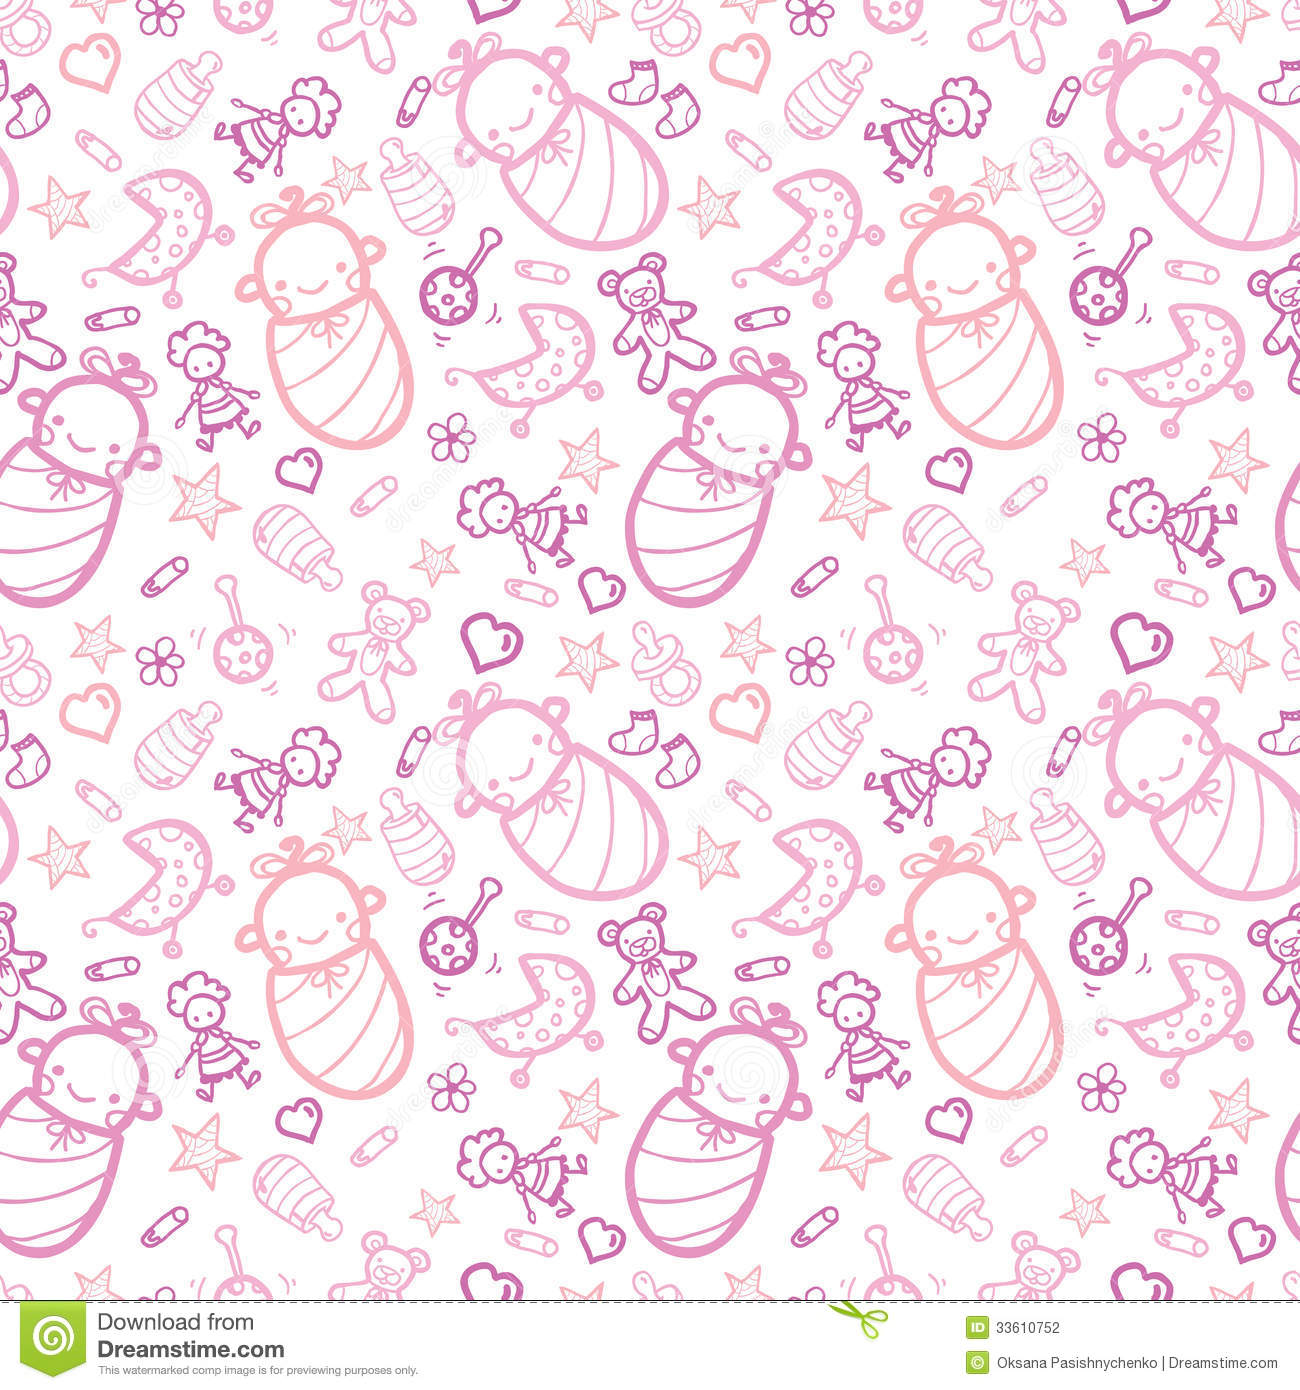 Cute Designs For Wallpapers Arrows Baby Girls Seamless Pattern Background Stock Photography